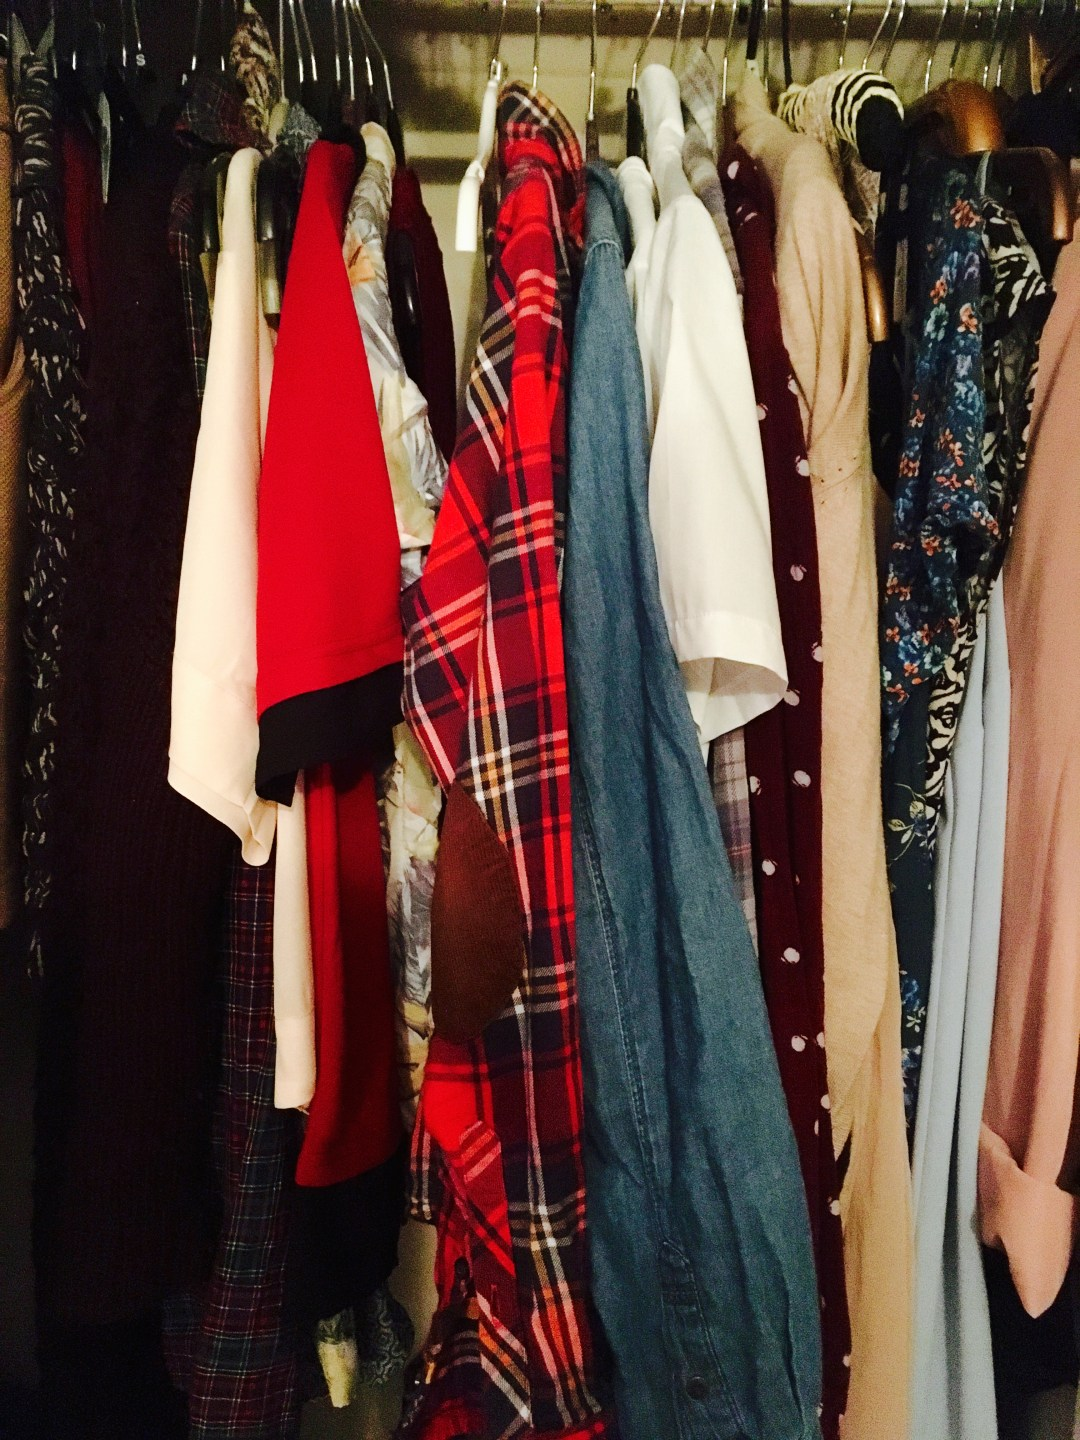 assortment of clothes hanging on rail